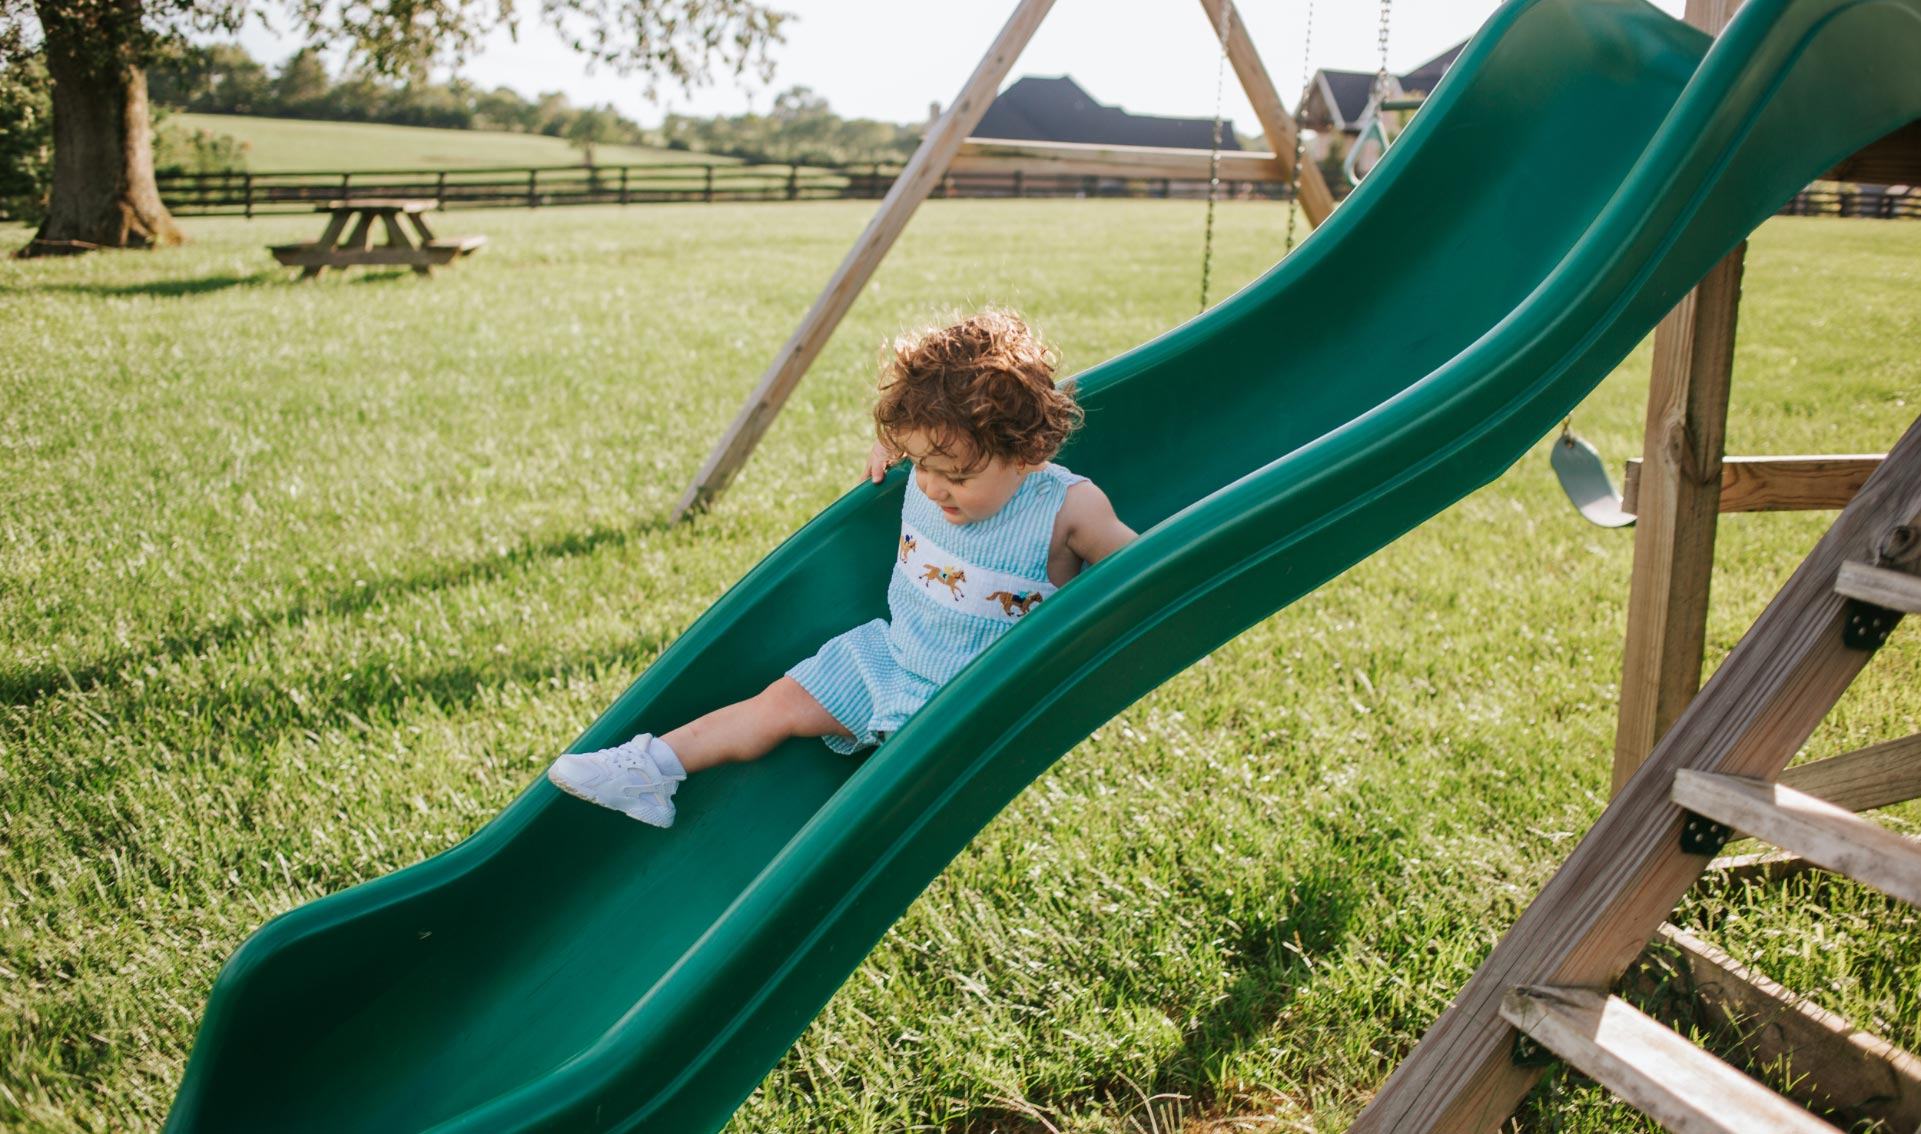 Charlie, dressed in a gingham overall set with horses on it, slides down a green slide attached to a wooden playground in the family's backyard.